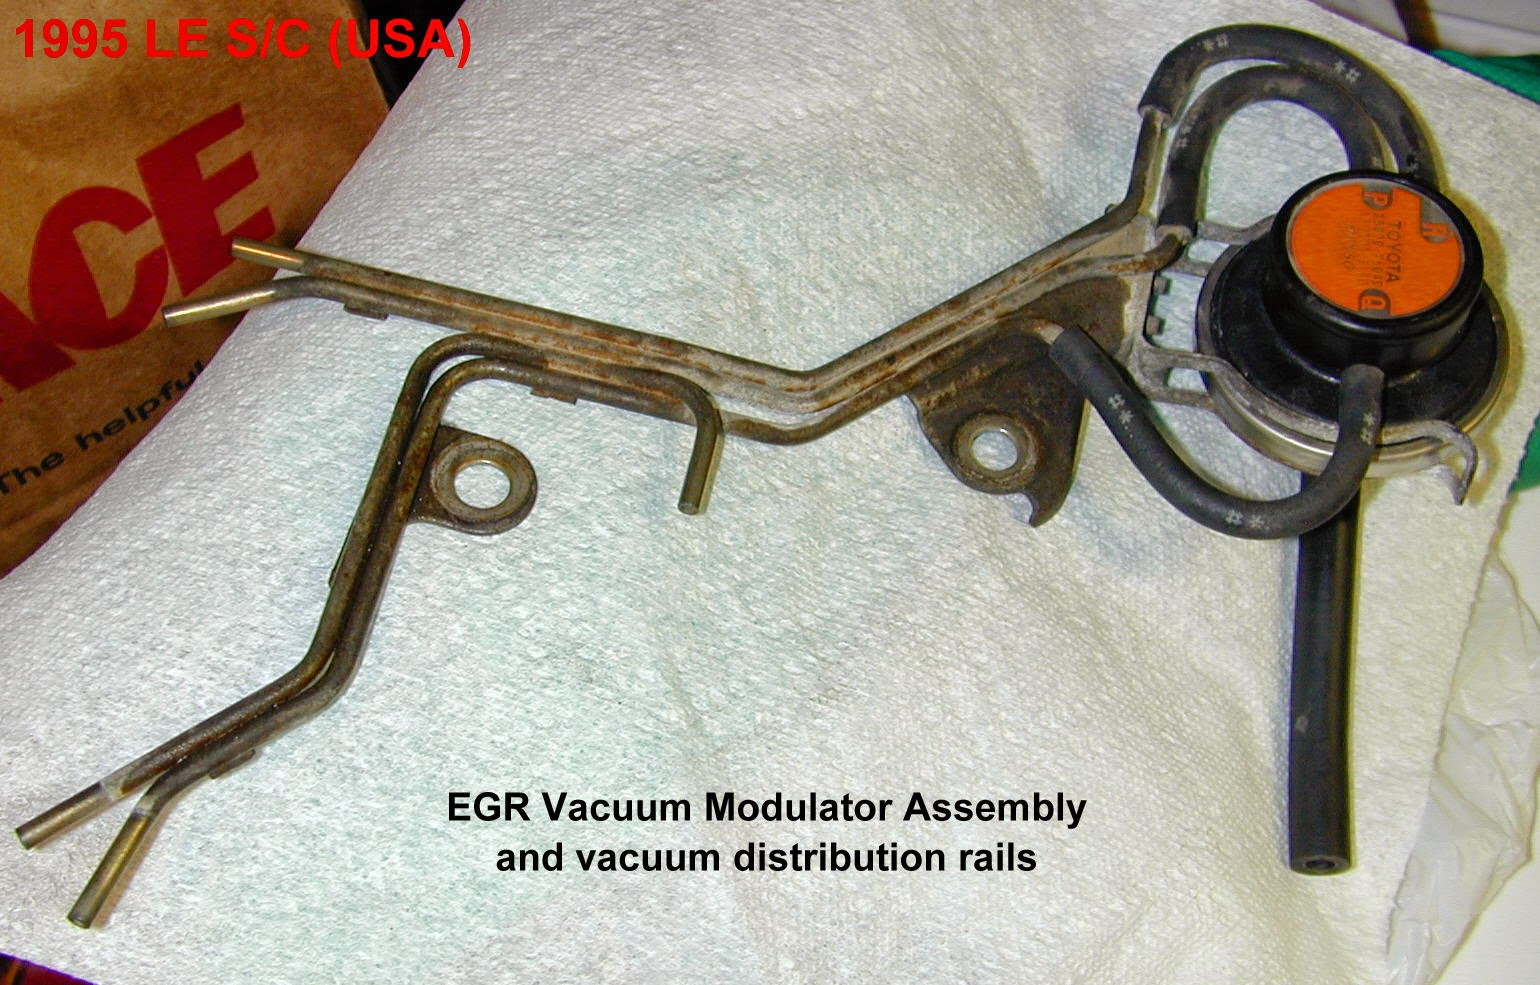 Egr System Clean Out And Code P0401 About My Previa Sienna 1994 Toyota Engine Diagram Http Zenseekernet Previamaintenancehtm